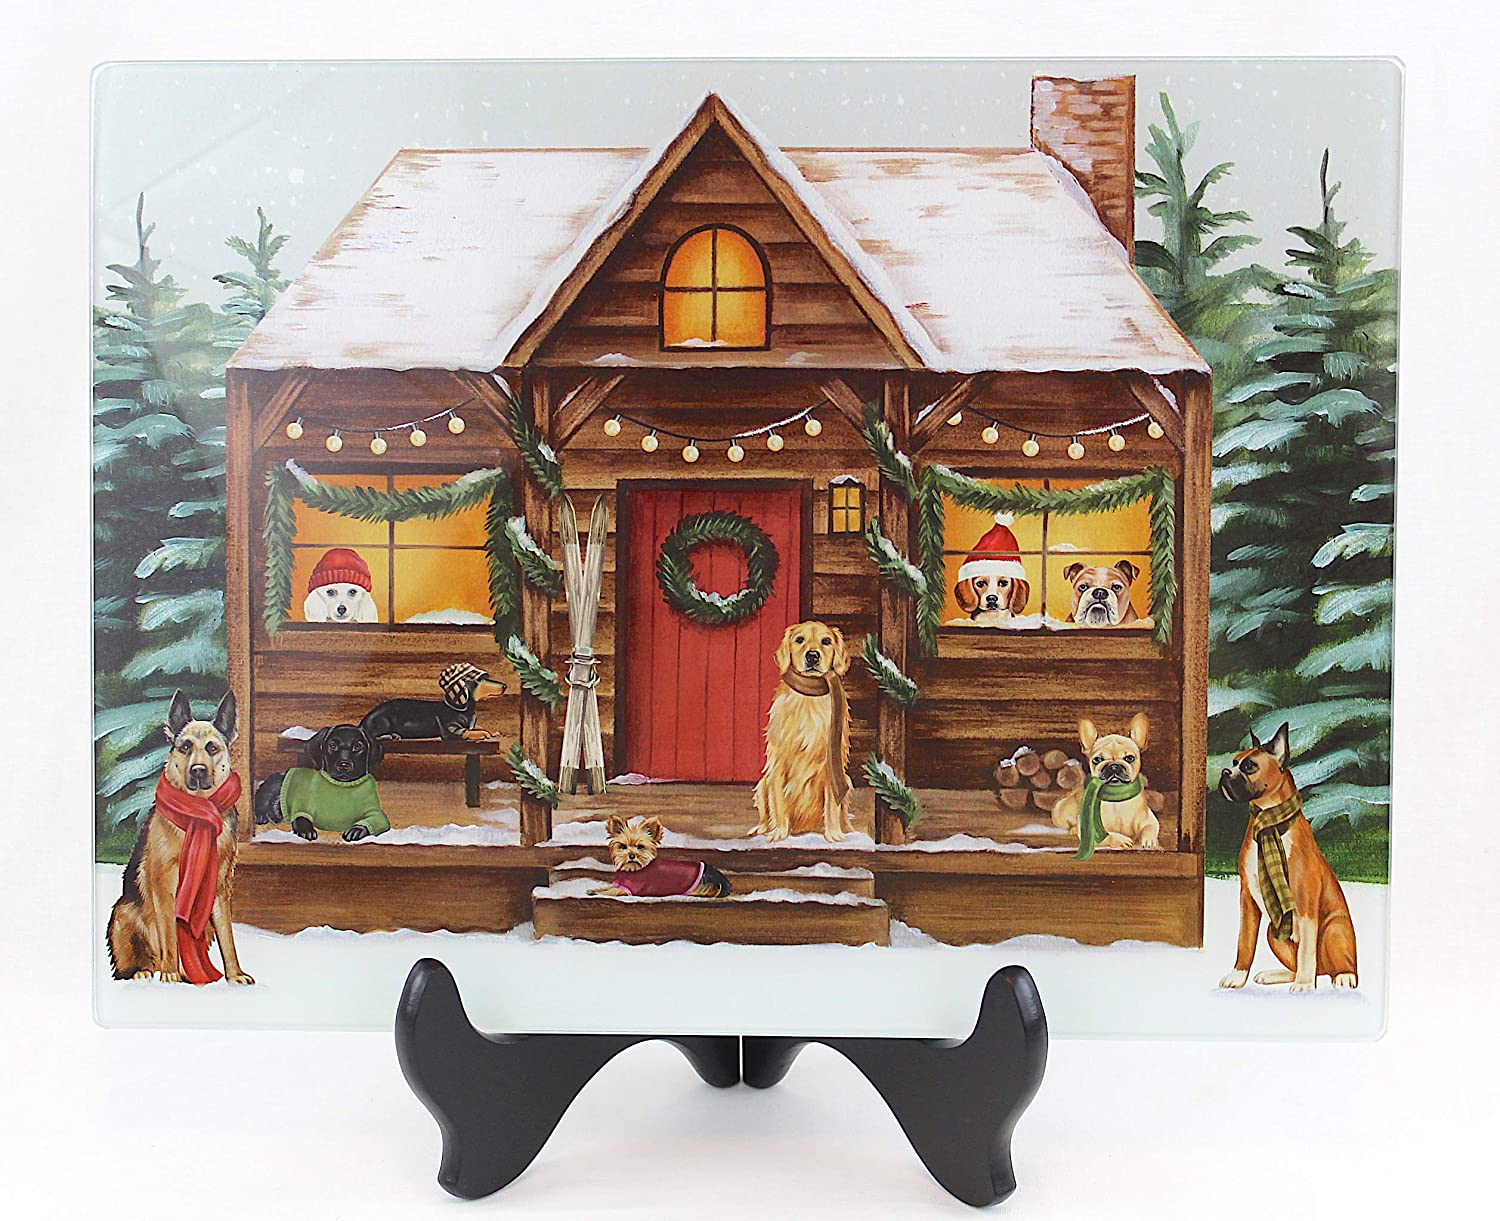 Holiday Glass Kitchen Cutting Board: Greetings from the Dog House